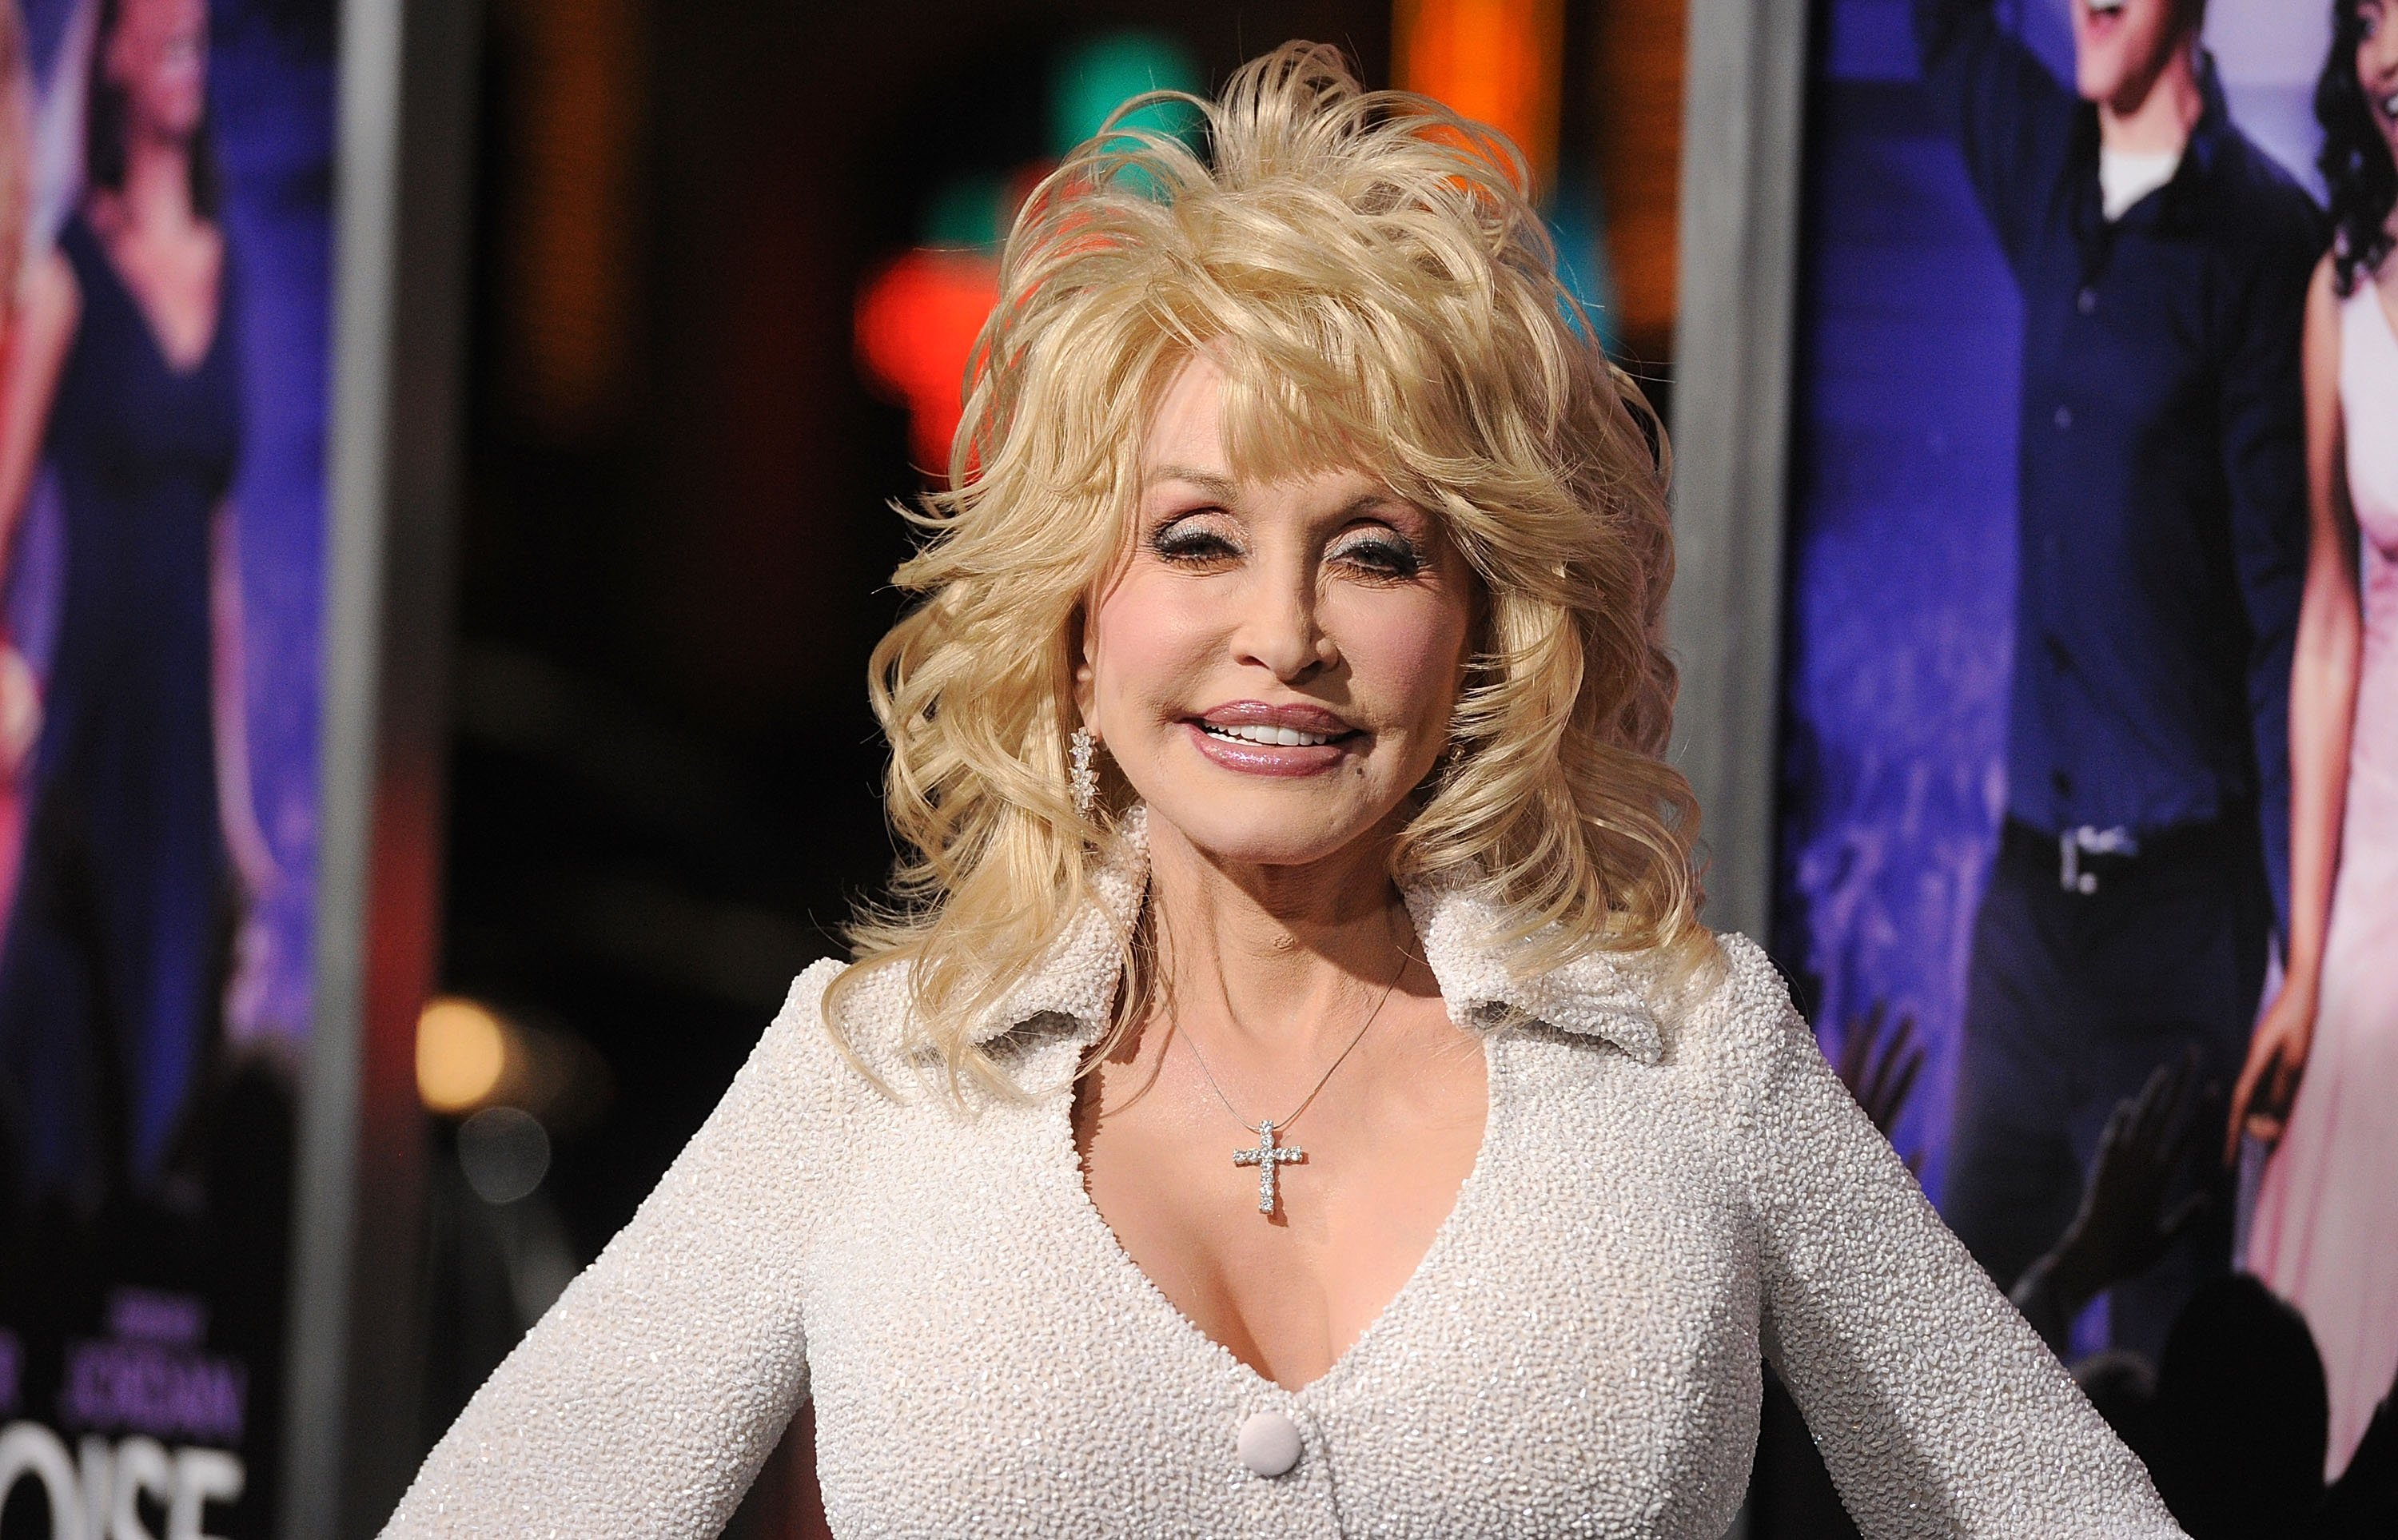 """Dolly Parton at the premiere of """"Joyful Noise"""" held at Grauman's Chinese Theatre on January 9, 2012. 